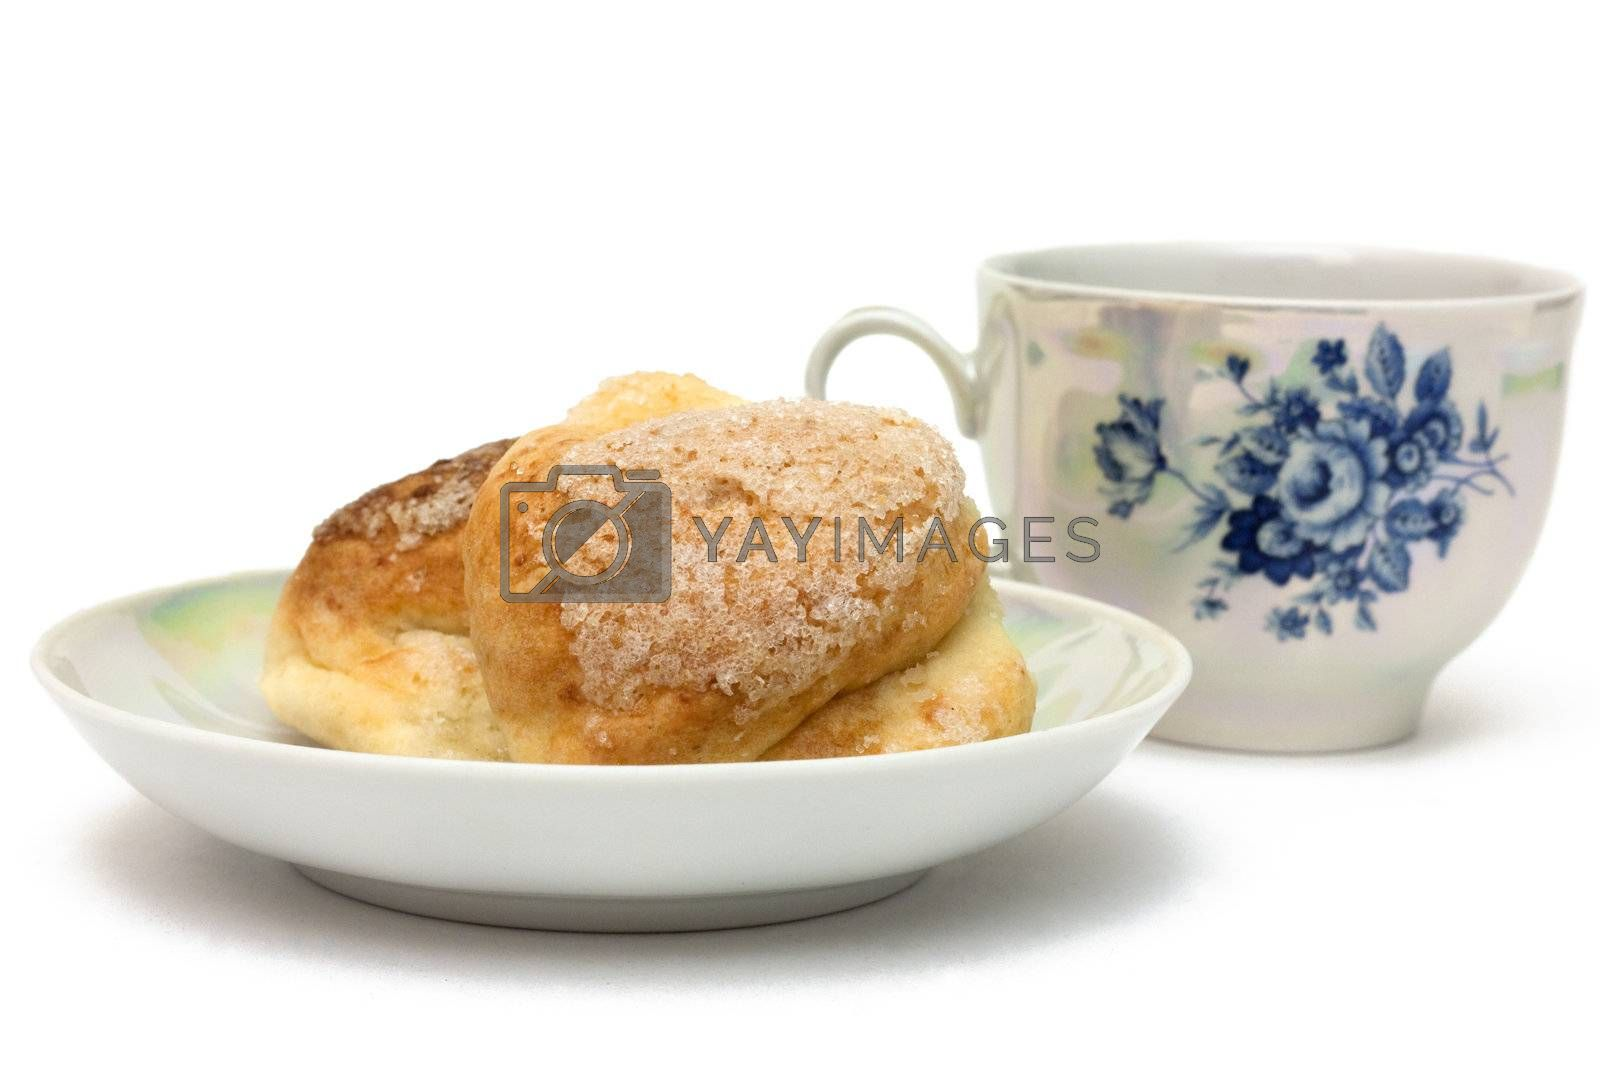 Baked goods on a saucer with a cup of tea isolated on white